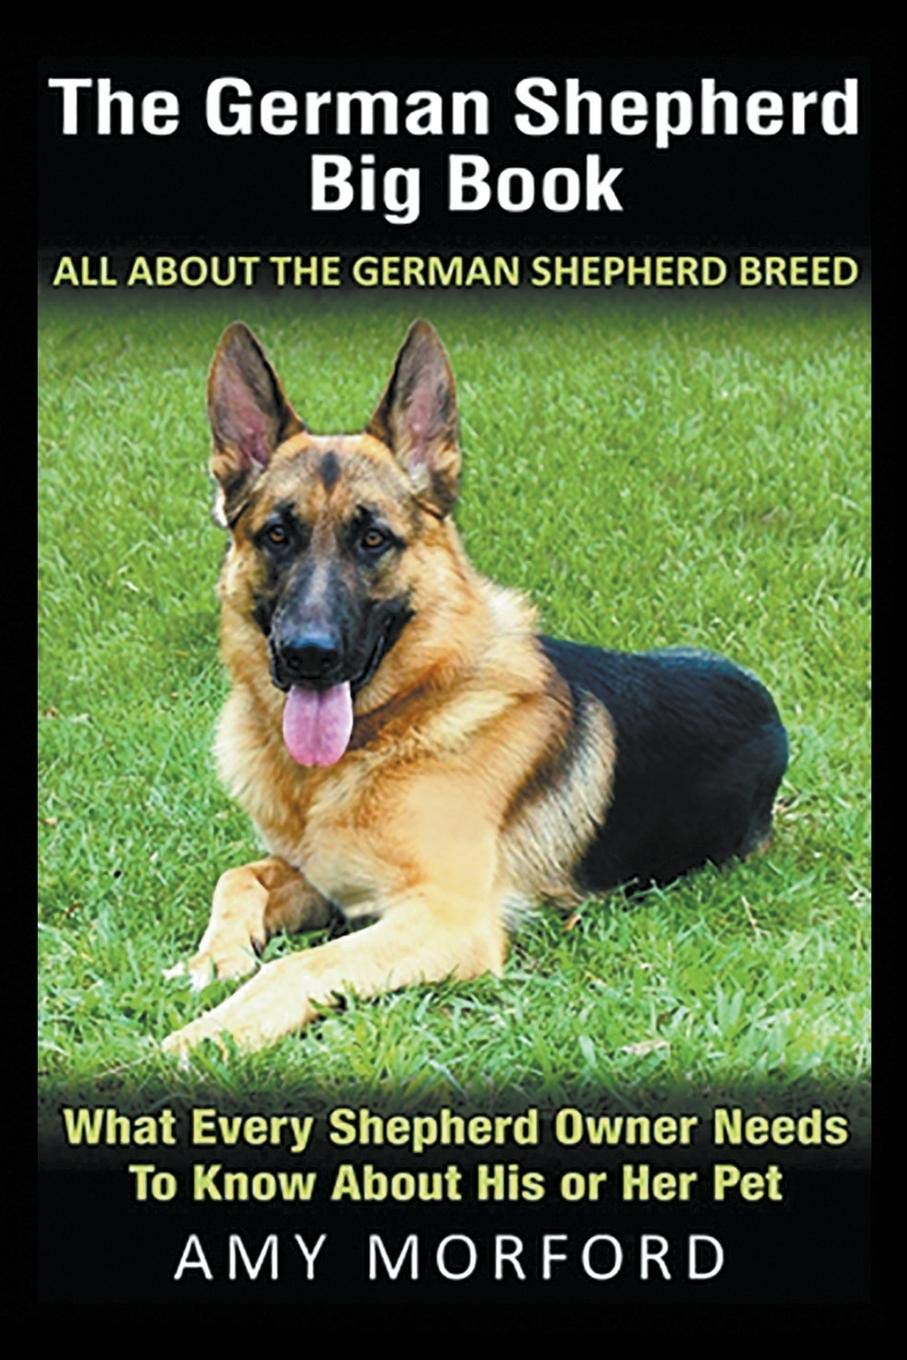 The-German-Shepherd-Big-Book-All-About-The-German-Shepherd-Breed-What-Every-Shepherd-Owner-Needs-To-Know-About-His-or-Her-Pet